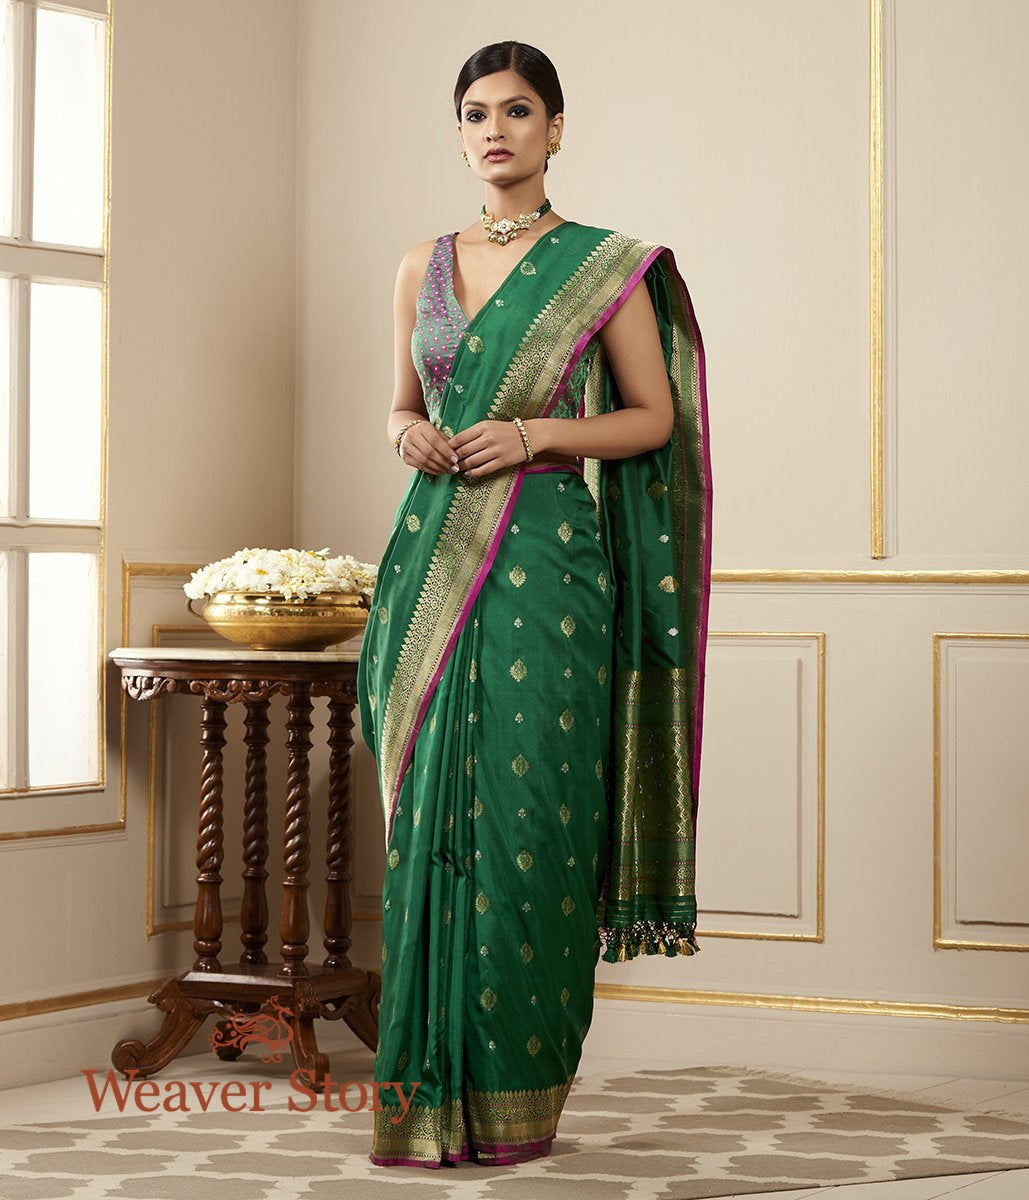 Handwoven EmeraLd Green Sona Rupa Saree